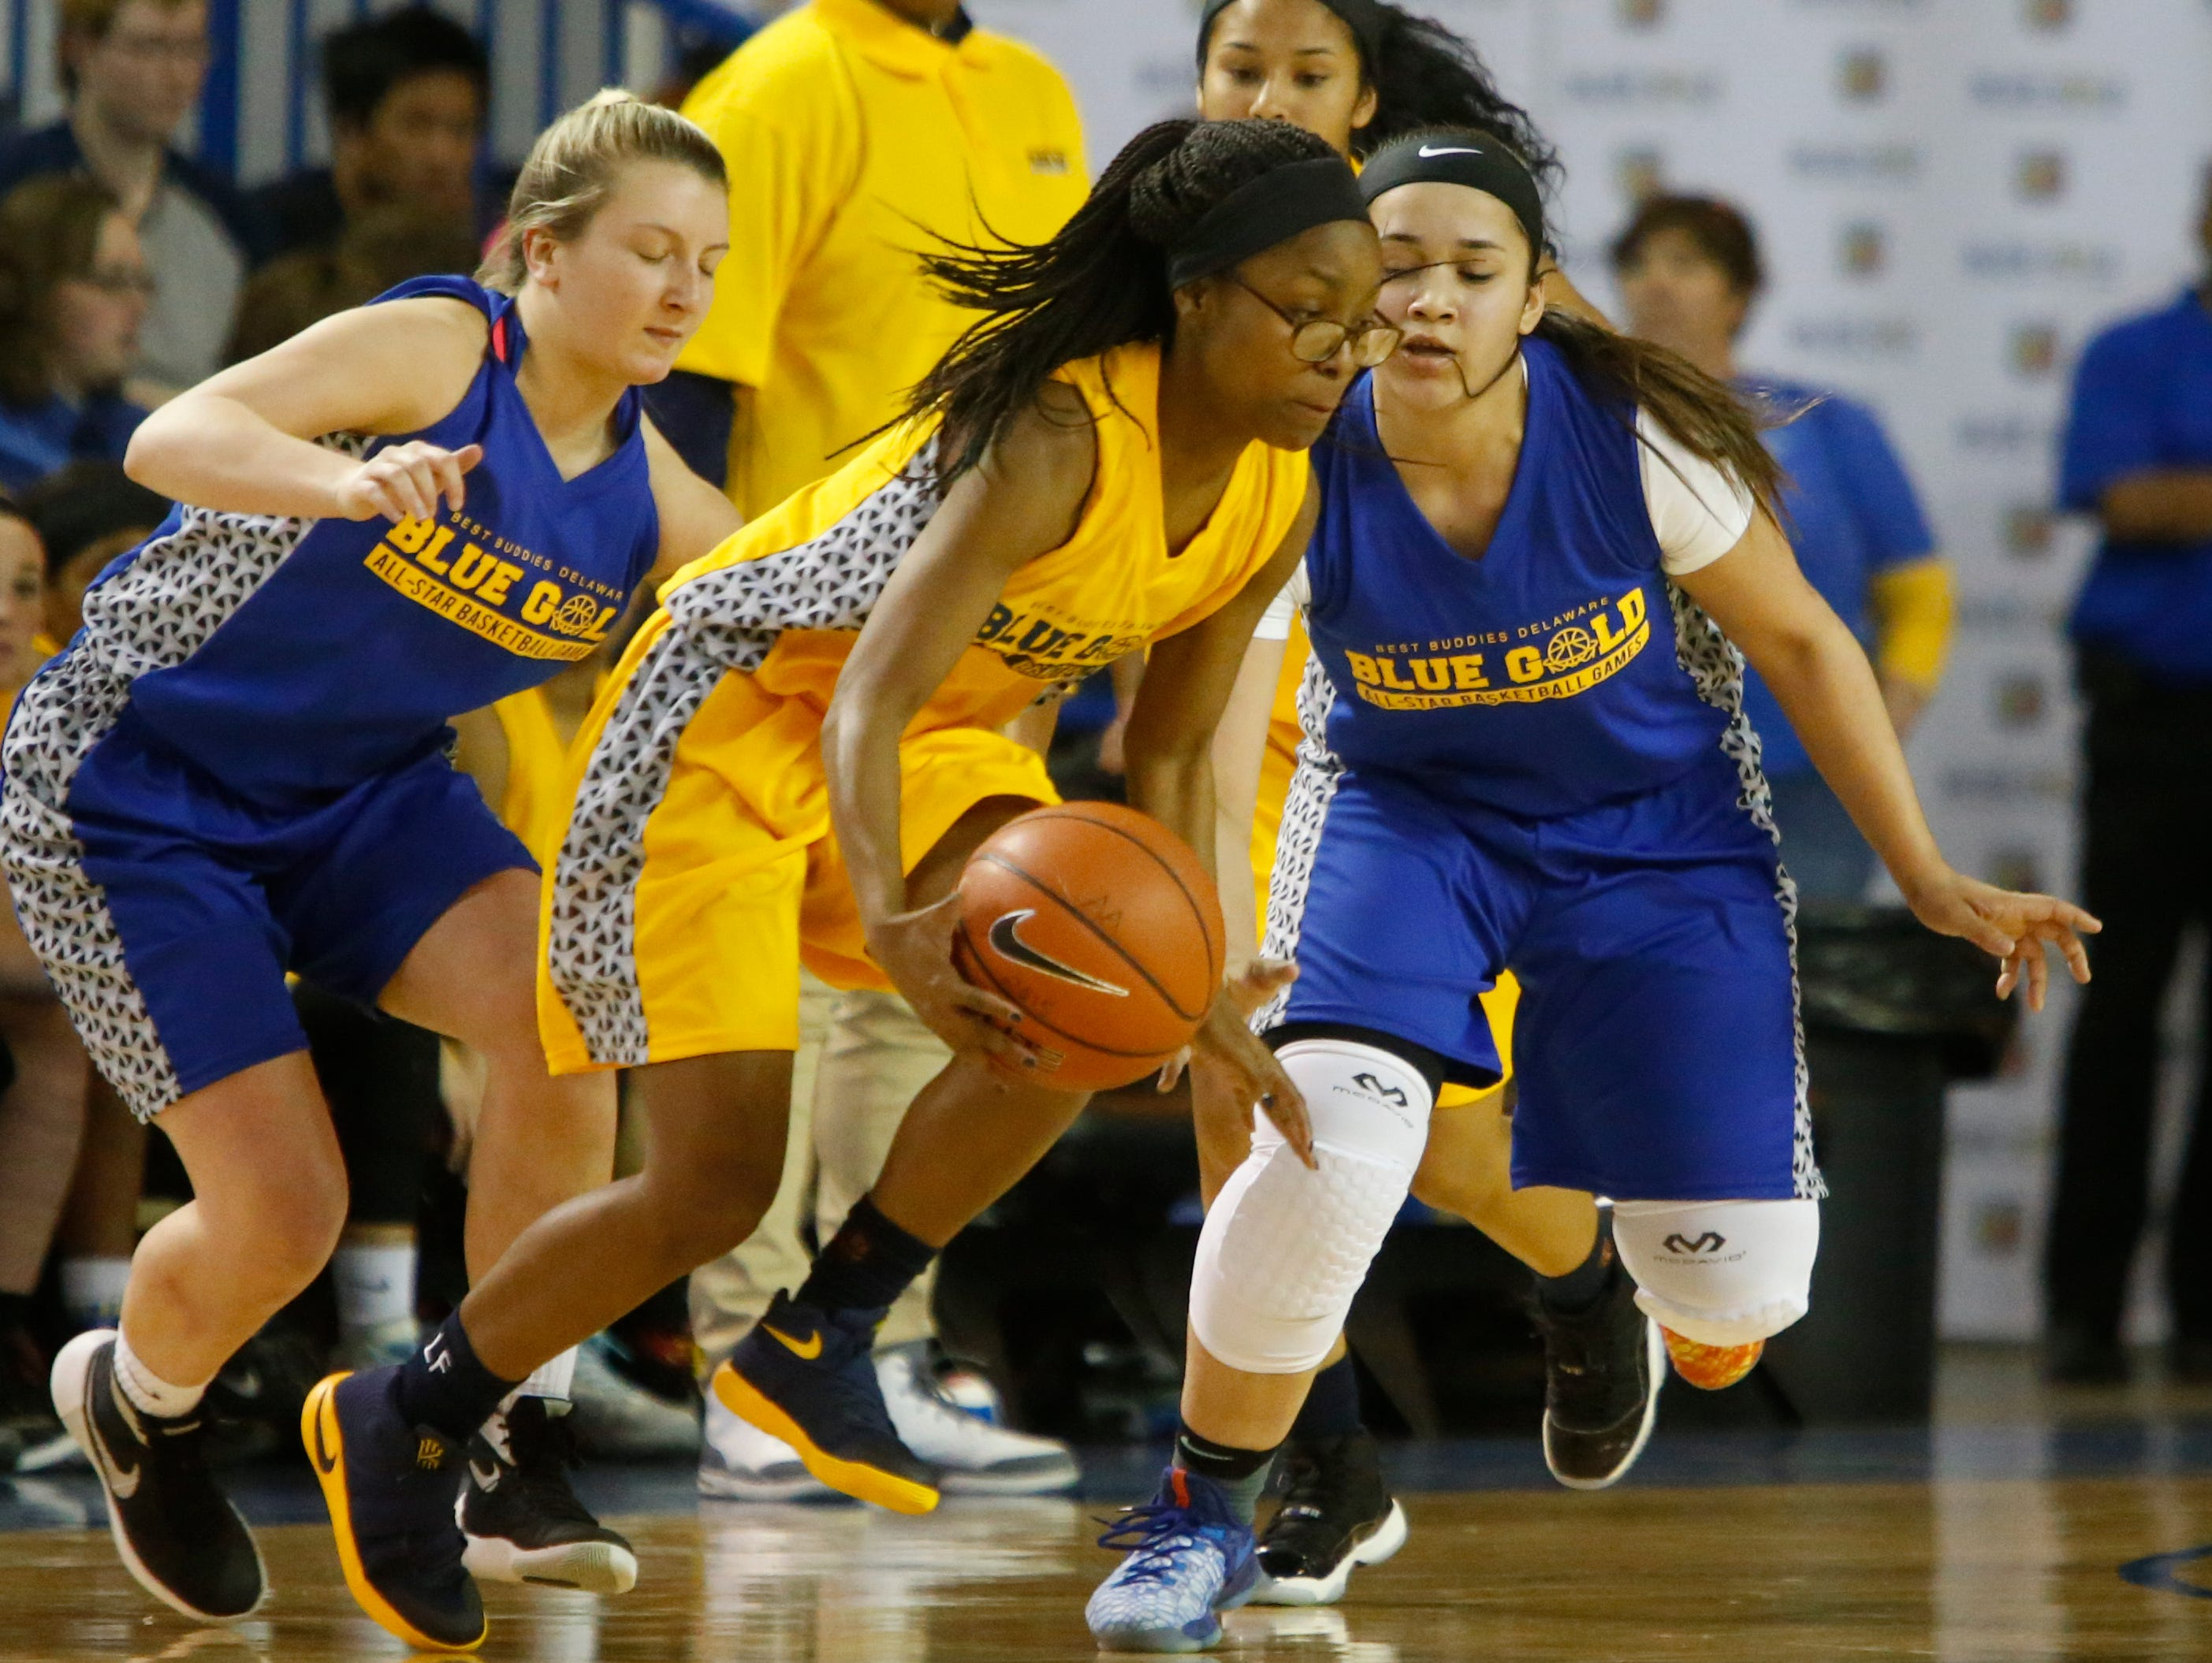 Gold's Arika Burrell of Lake Forest (center) is defended by Blue's Lexi Bromwell of St. Elizabeth (left) and Jaylin Ortiz of Delcastle in the second half of the Blue-Gold All-Star Basketball game at the Bob Carpenter Center Saturday. Blue won, 66-54.